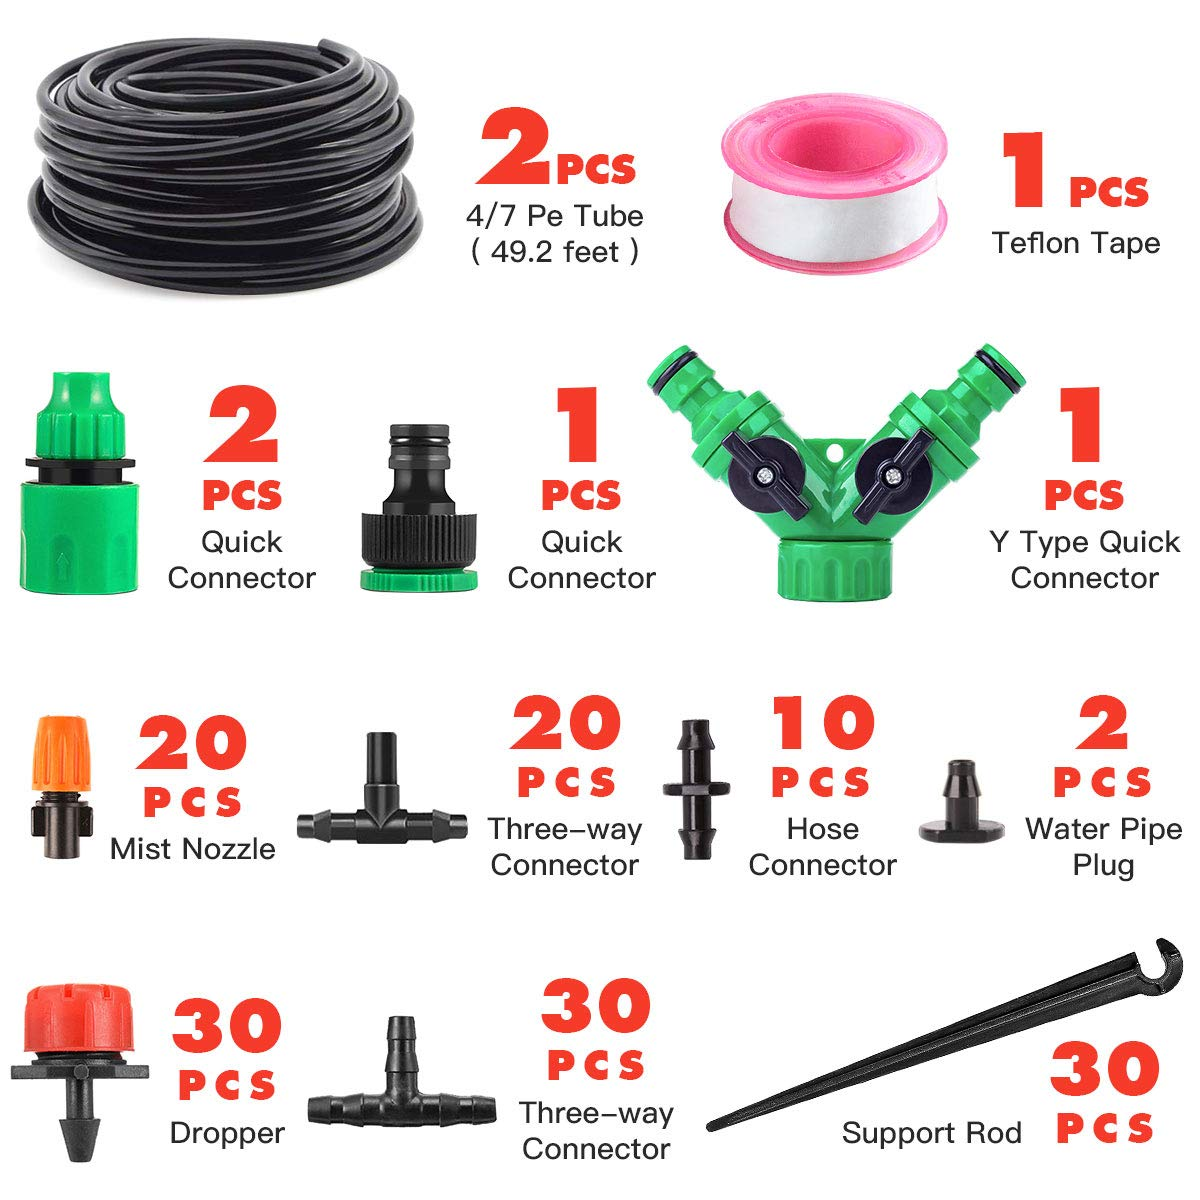 Garden Automatic Drip Irrigation Set,30m Adjustable Micro DIY Irrigation Kit Plant Water Saving System,1//4 Heavy Duty Tube Watering Kit for Patio Lawn Garden Greenhouse Flower Bed